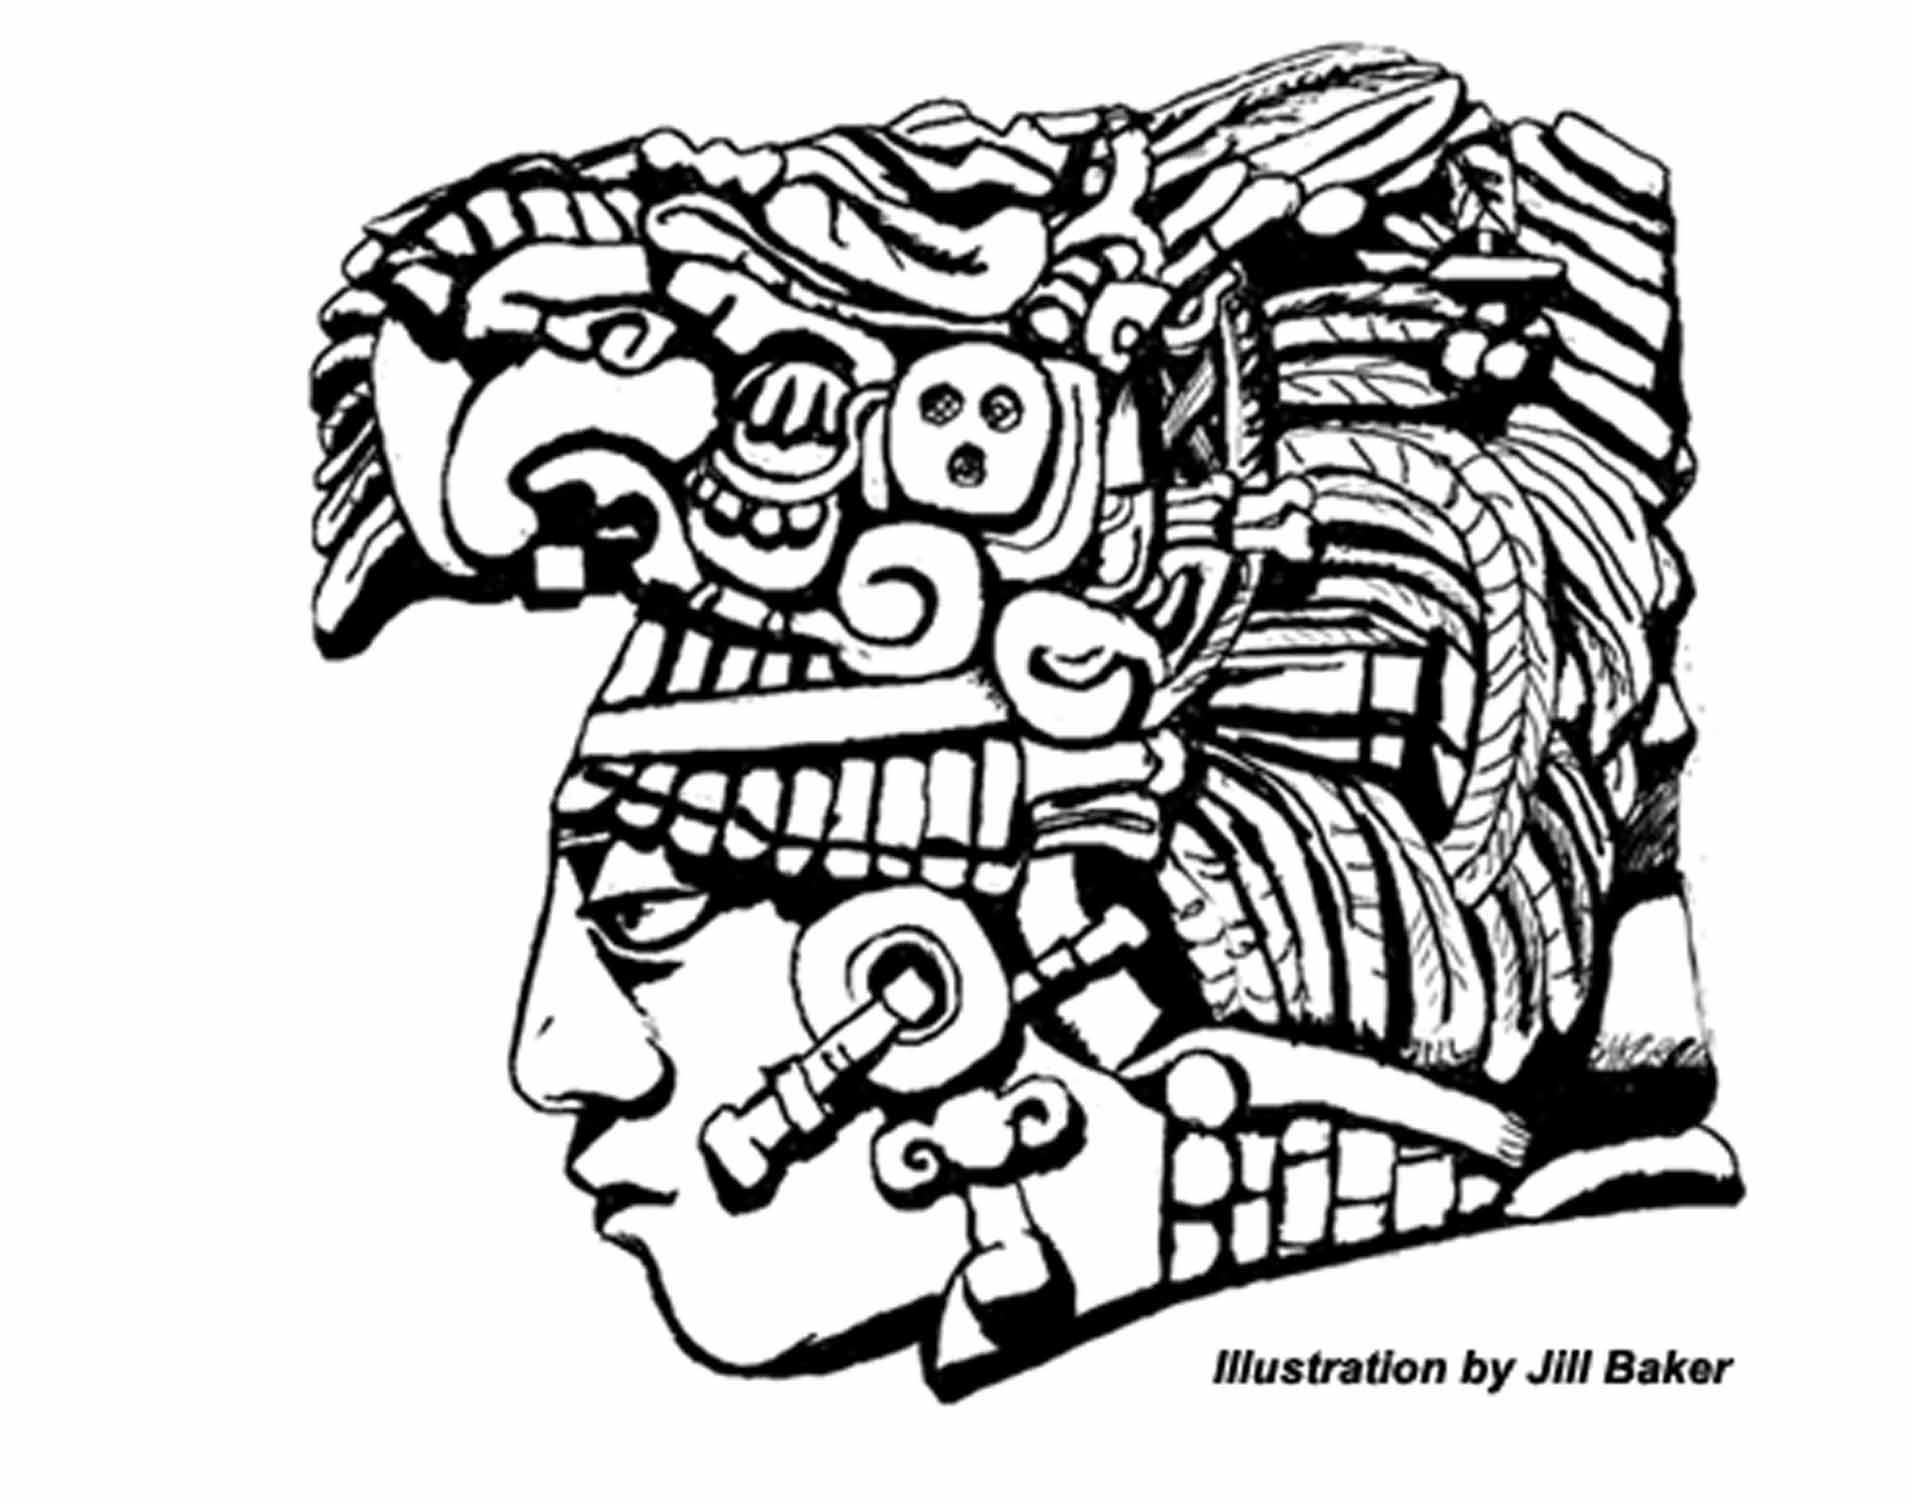 maya civilization mesoamerica maya peoples drawing maya religion maya civilization mesoamerica maya peoples drawing maya religion flattening of ancient